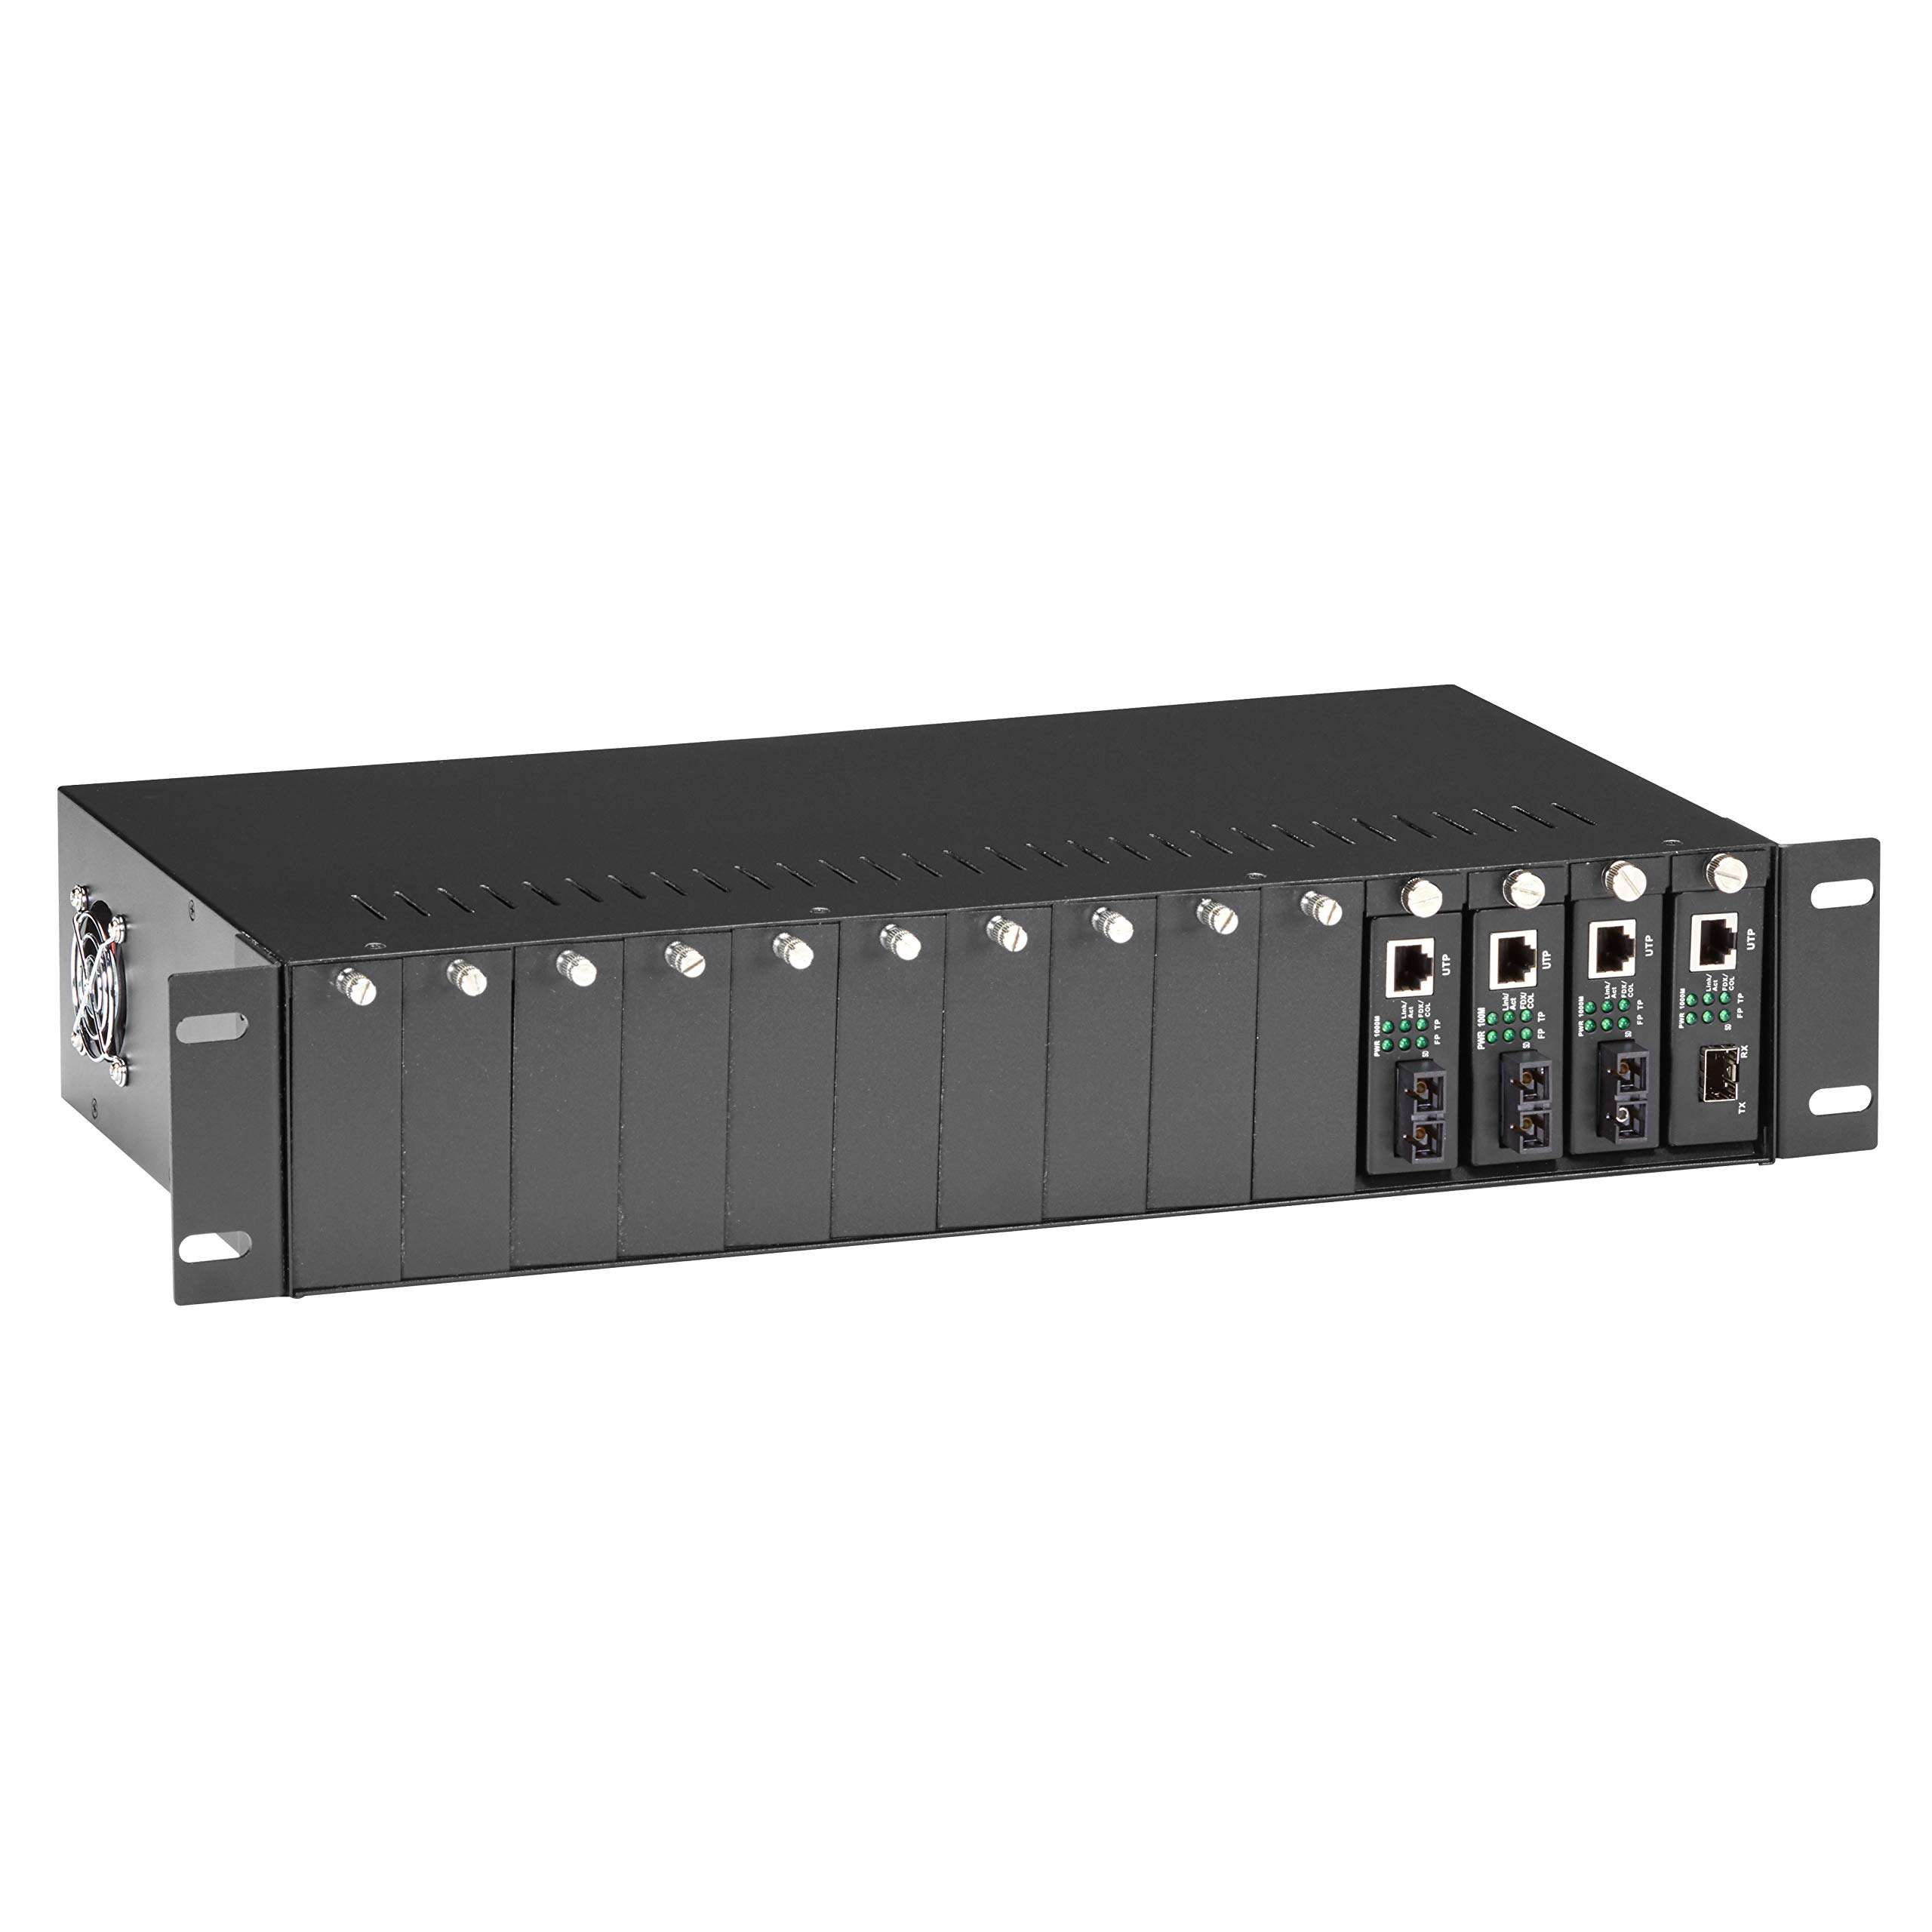 Black Box Copper to Fiber Media Converter Chassis - 2U 14-Slot by Black Box